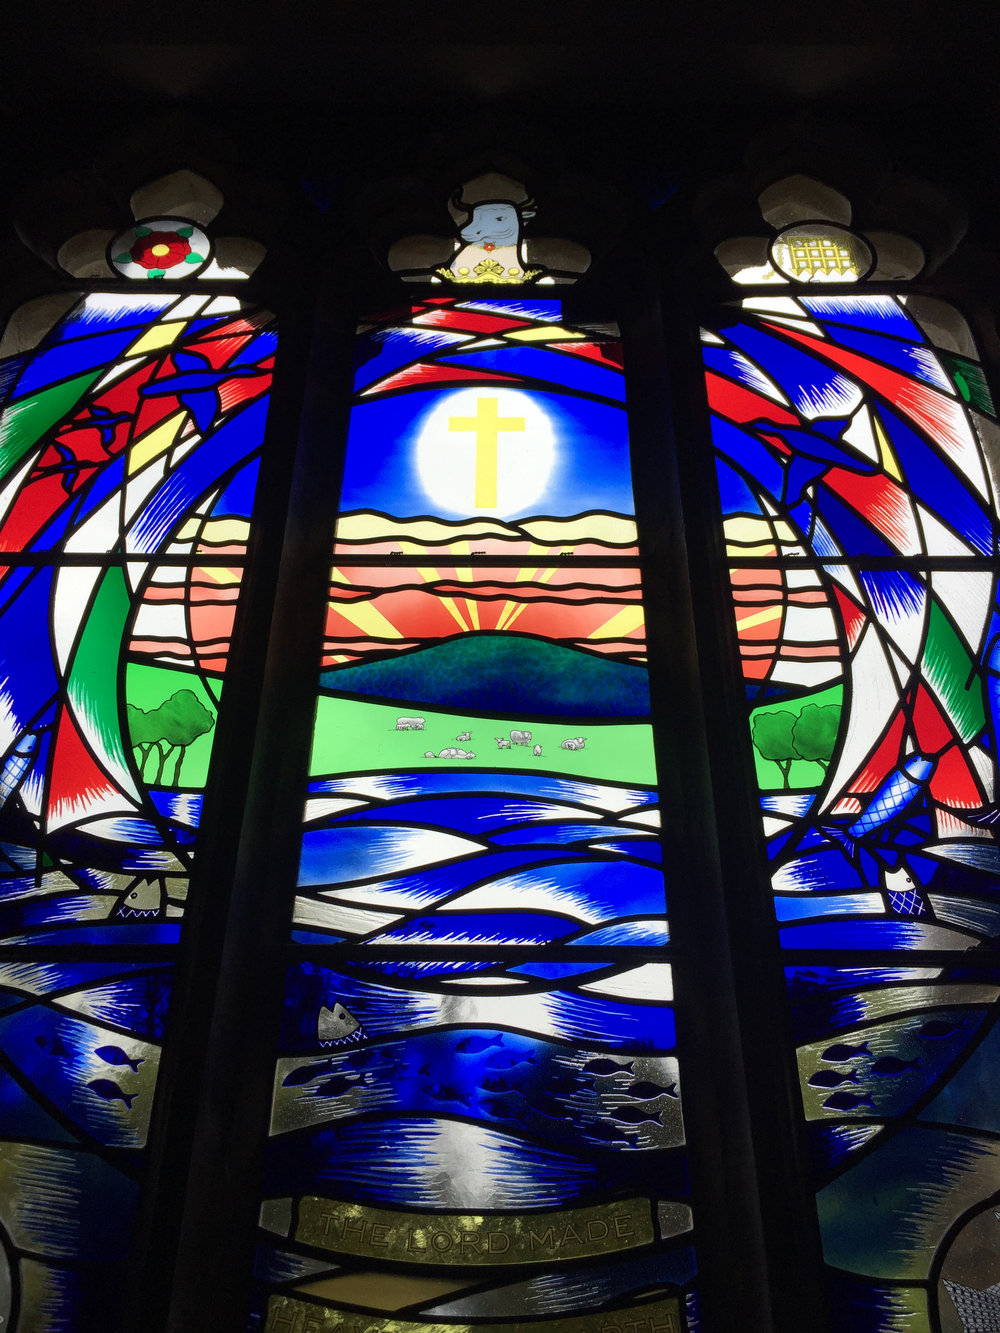 Eridge Church stained glass window